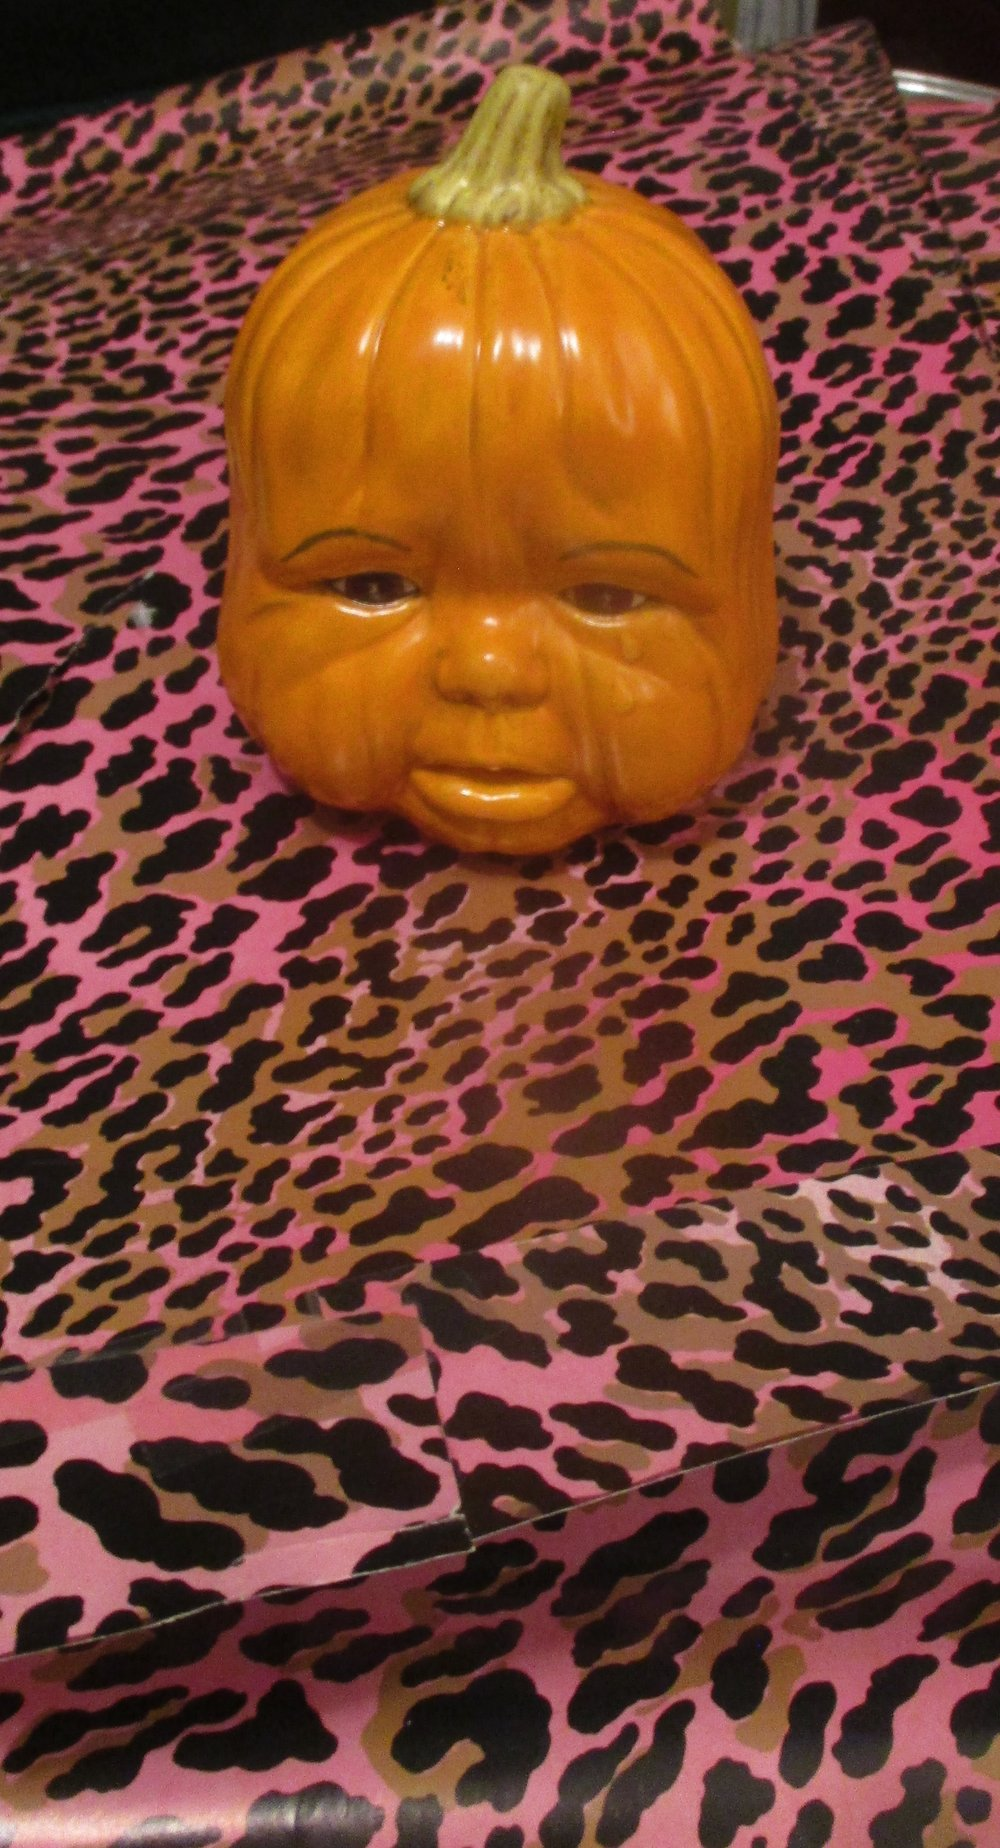 Weeping Baby Pumpkin Head did not get to see the royal wedding today.